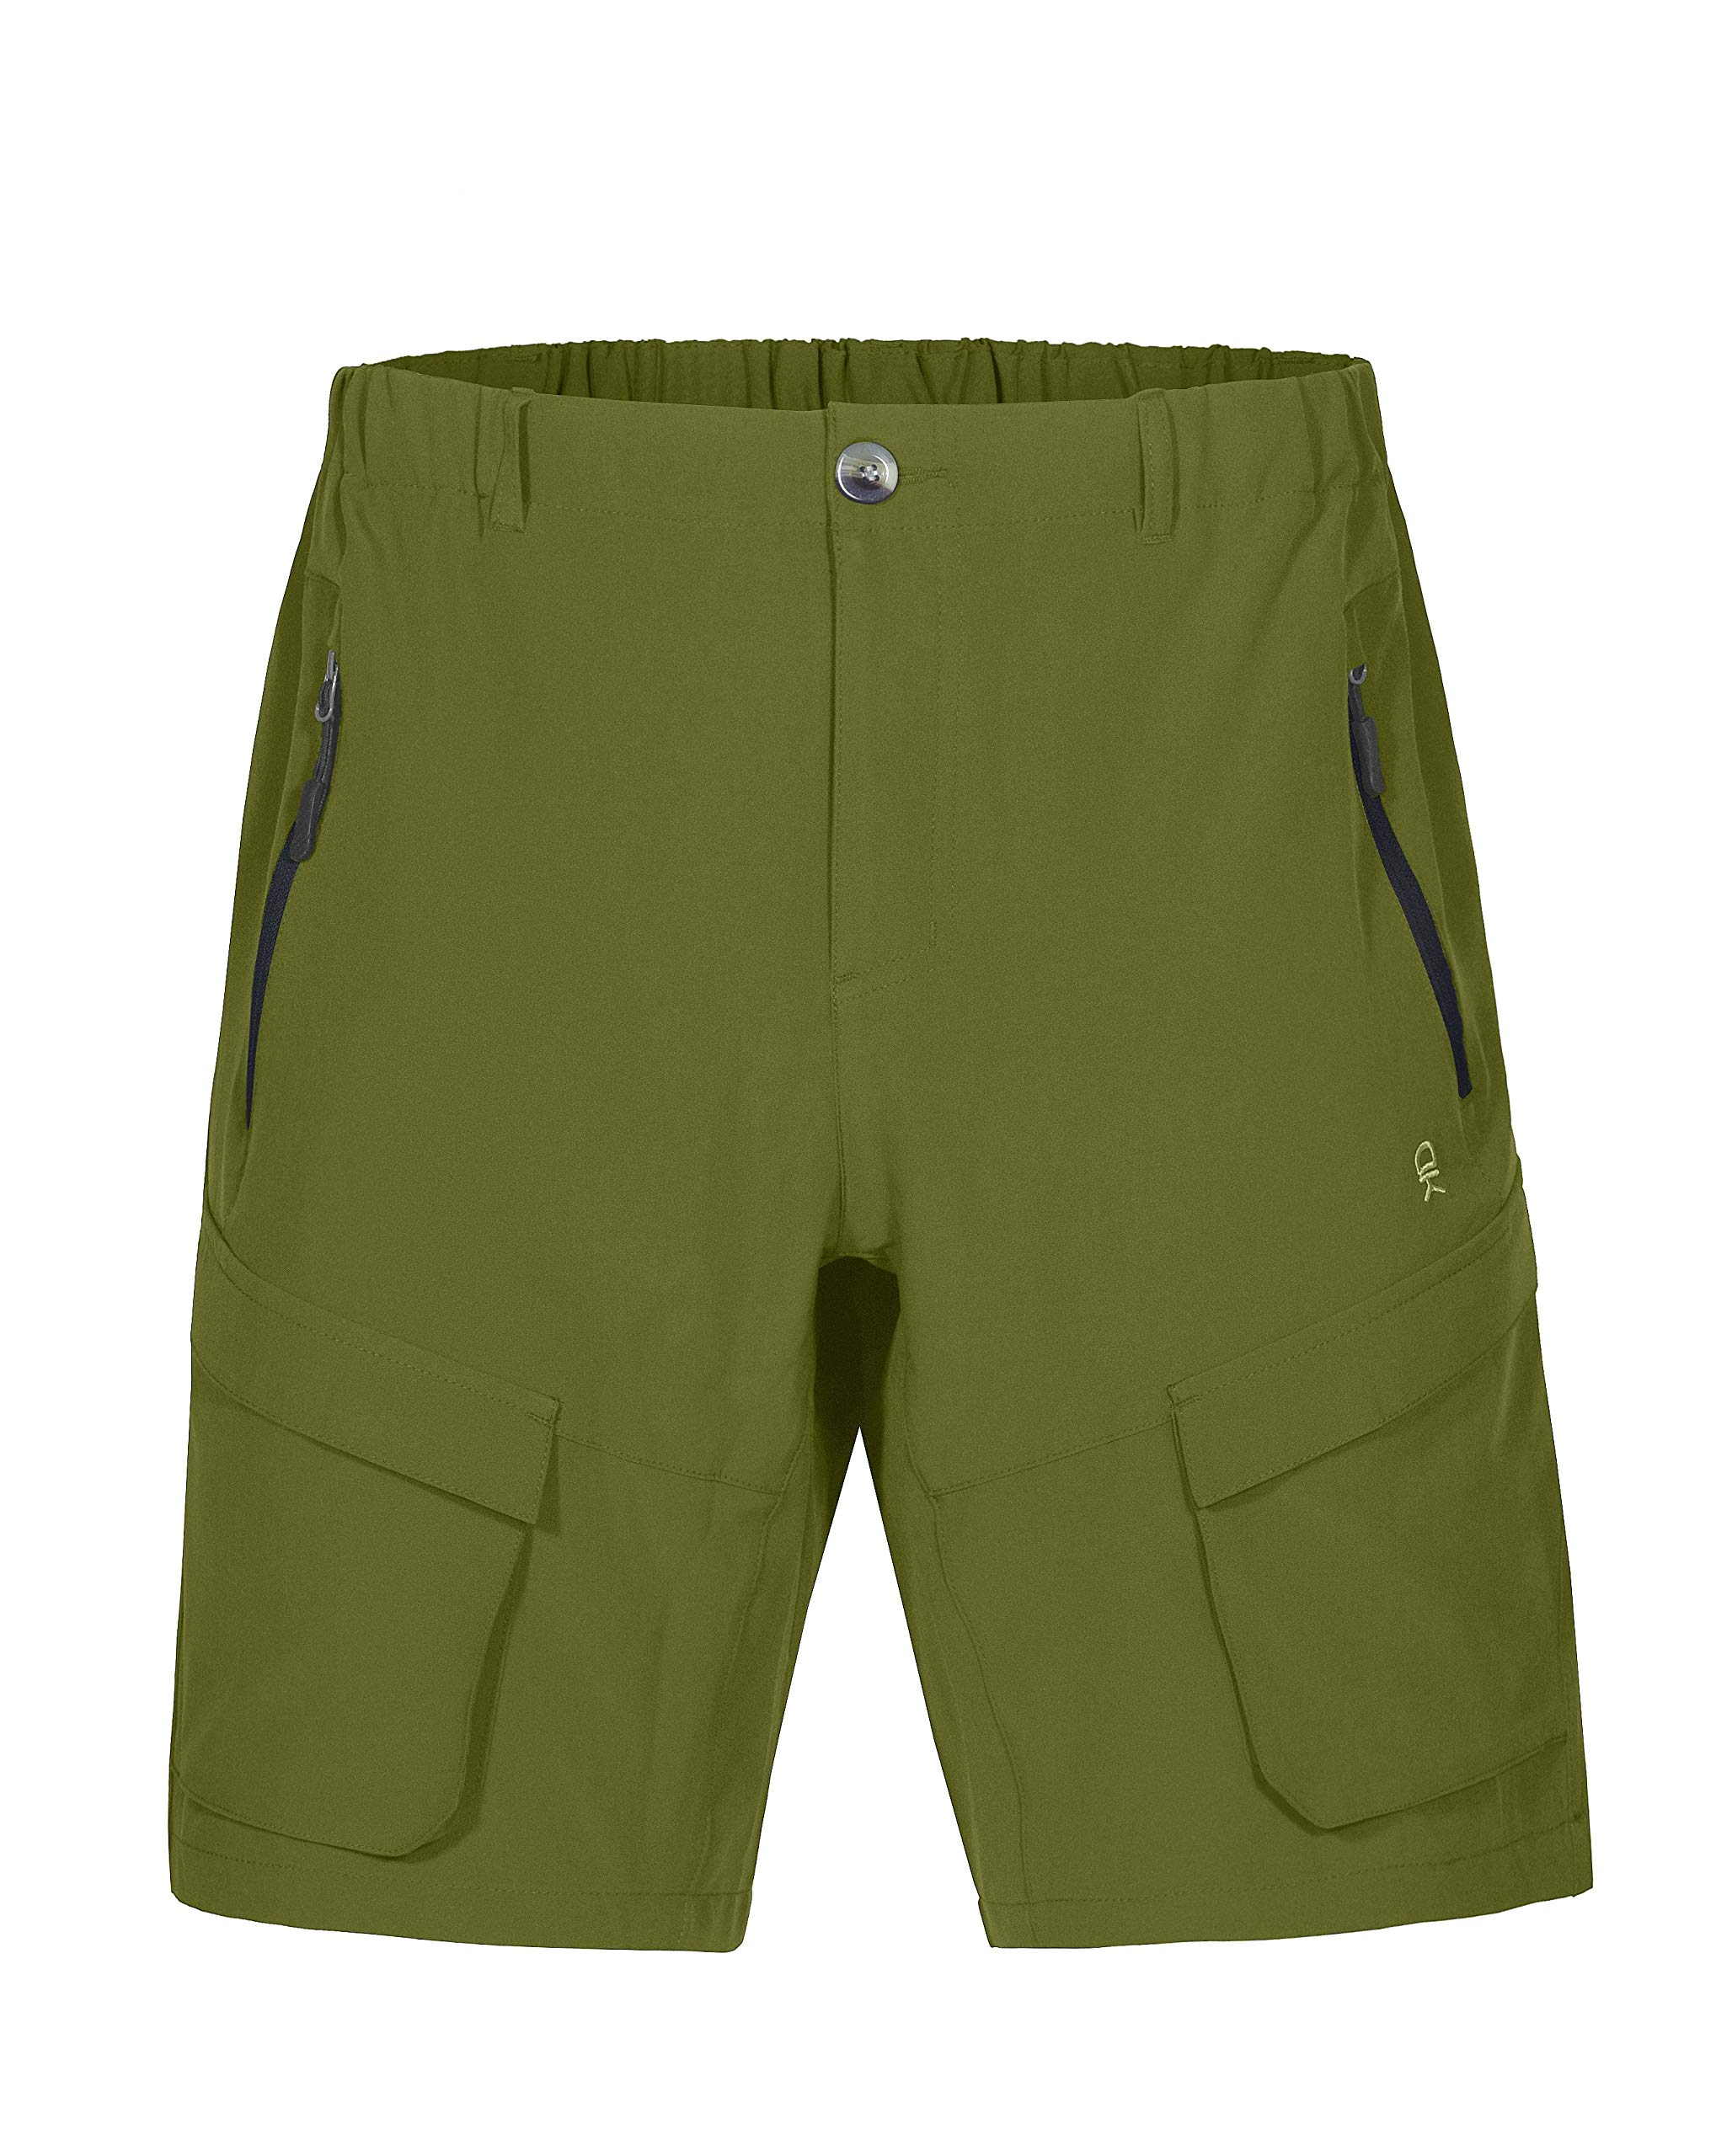 Little Donkey Andy Men's Stretch Quick Dry Cargo Shorts for Hiking, Camping, Travel Olive Size L by Little Donkey Andy